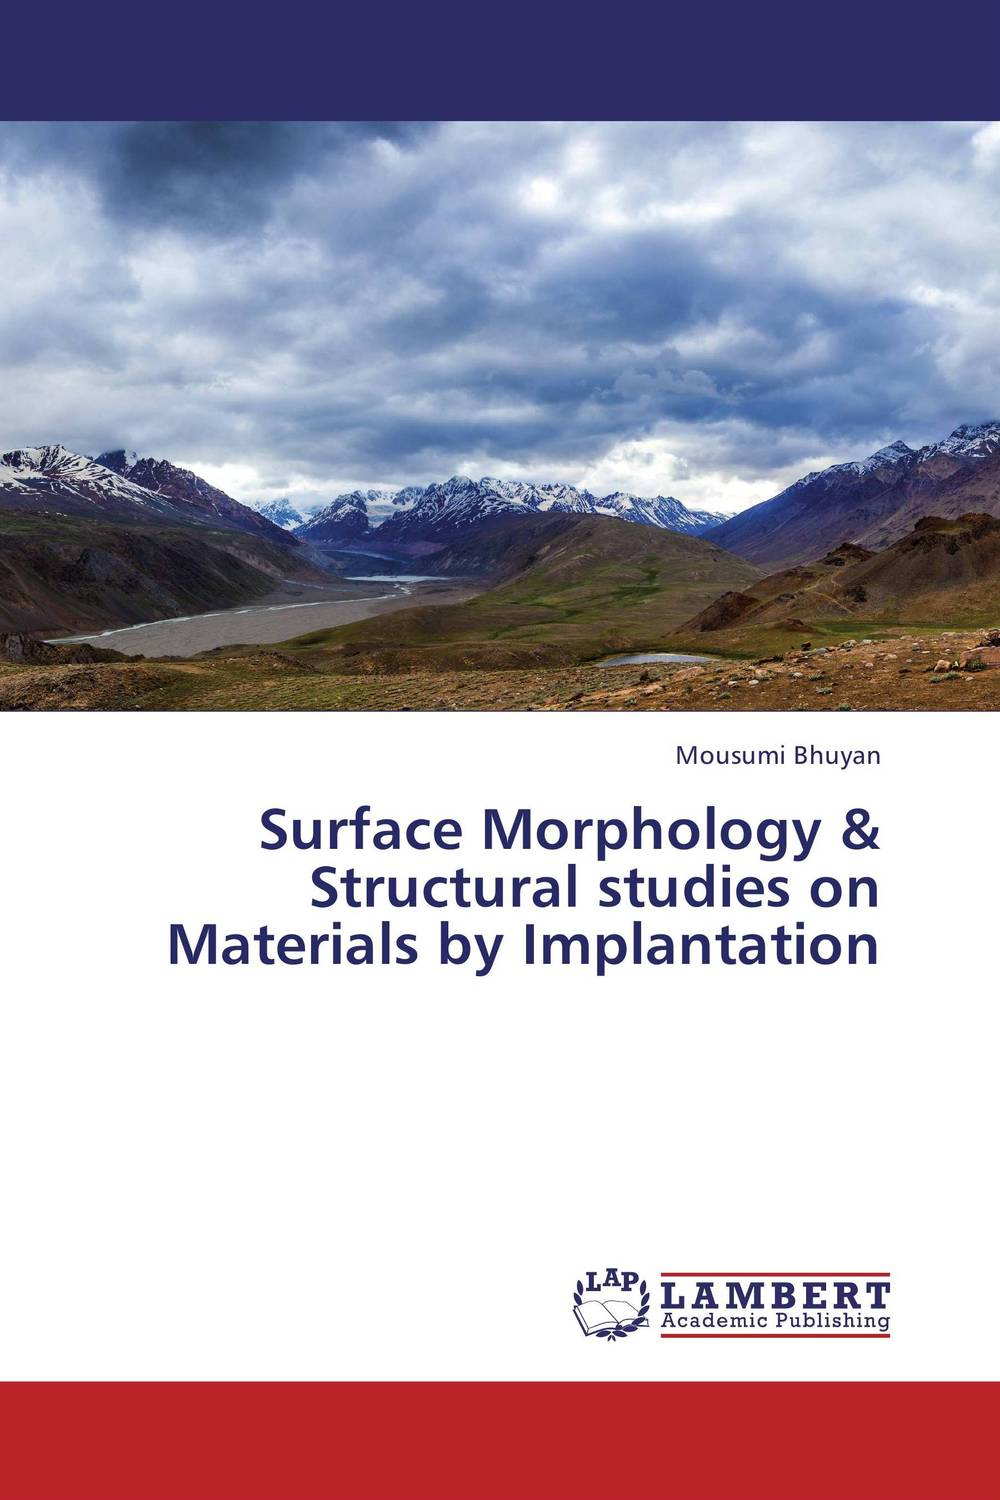 Surface Morphology & Structural studies on Materials by Implantation materials surface processing by directed energy techniques